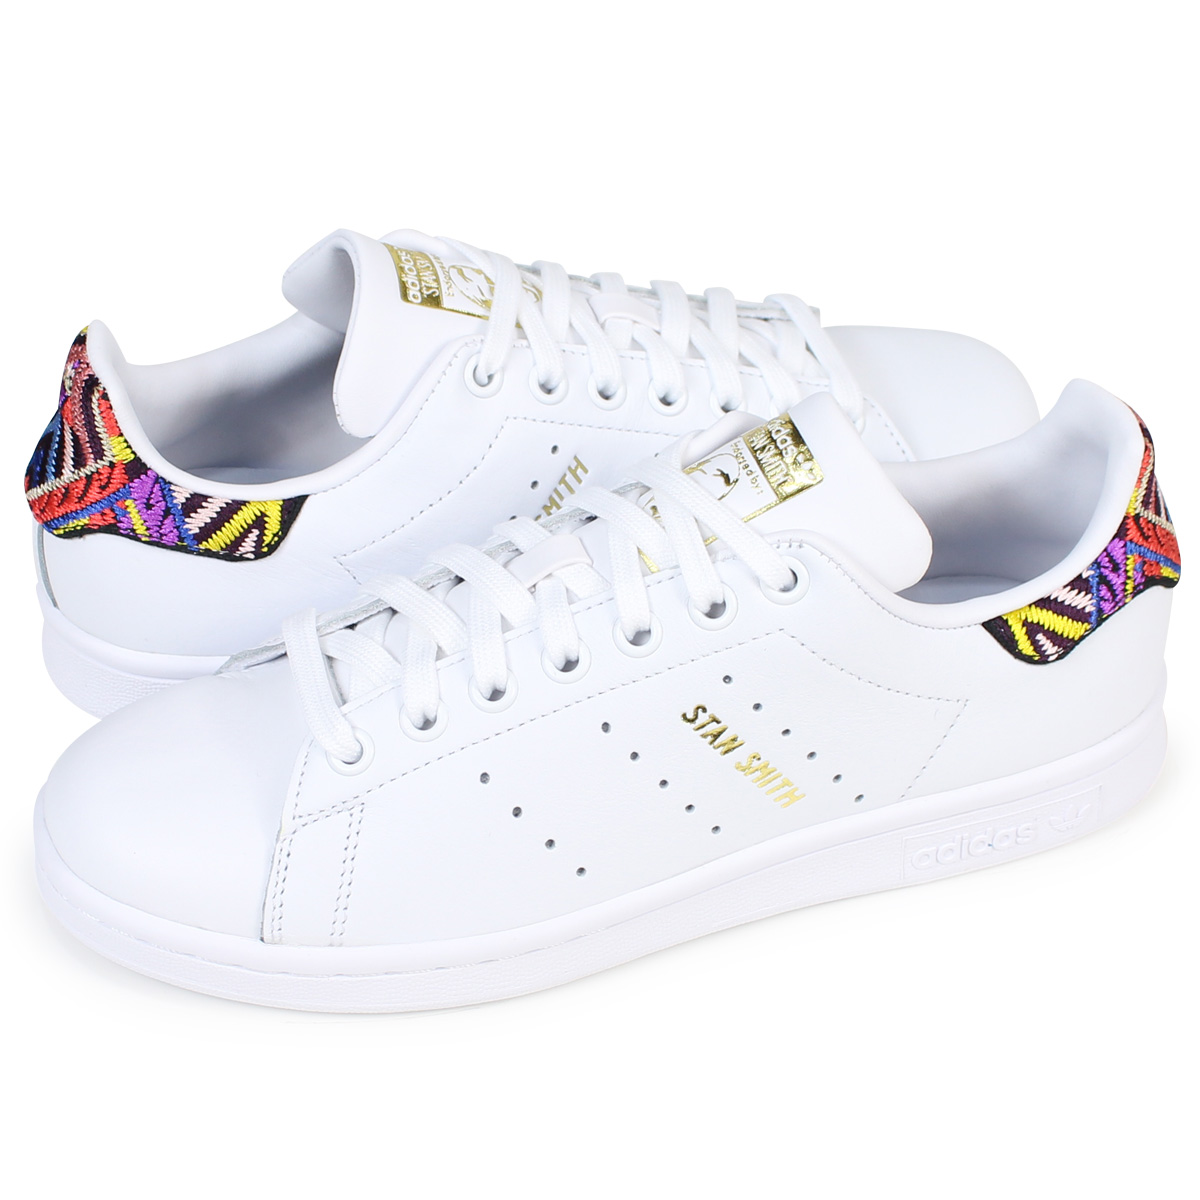 size 40 3cb60 77b4b adidas originals STAN SMITH W Adidas Stan Smith Lady's sneakers CQ2814  shoes white [load planned Shinnyu load in reservation product 12/21  containing] ...